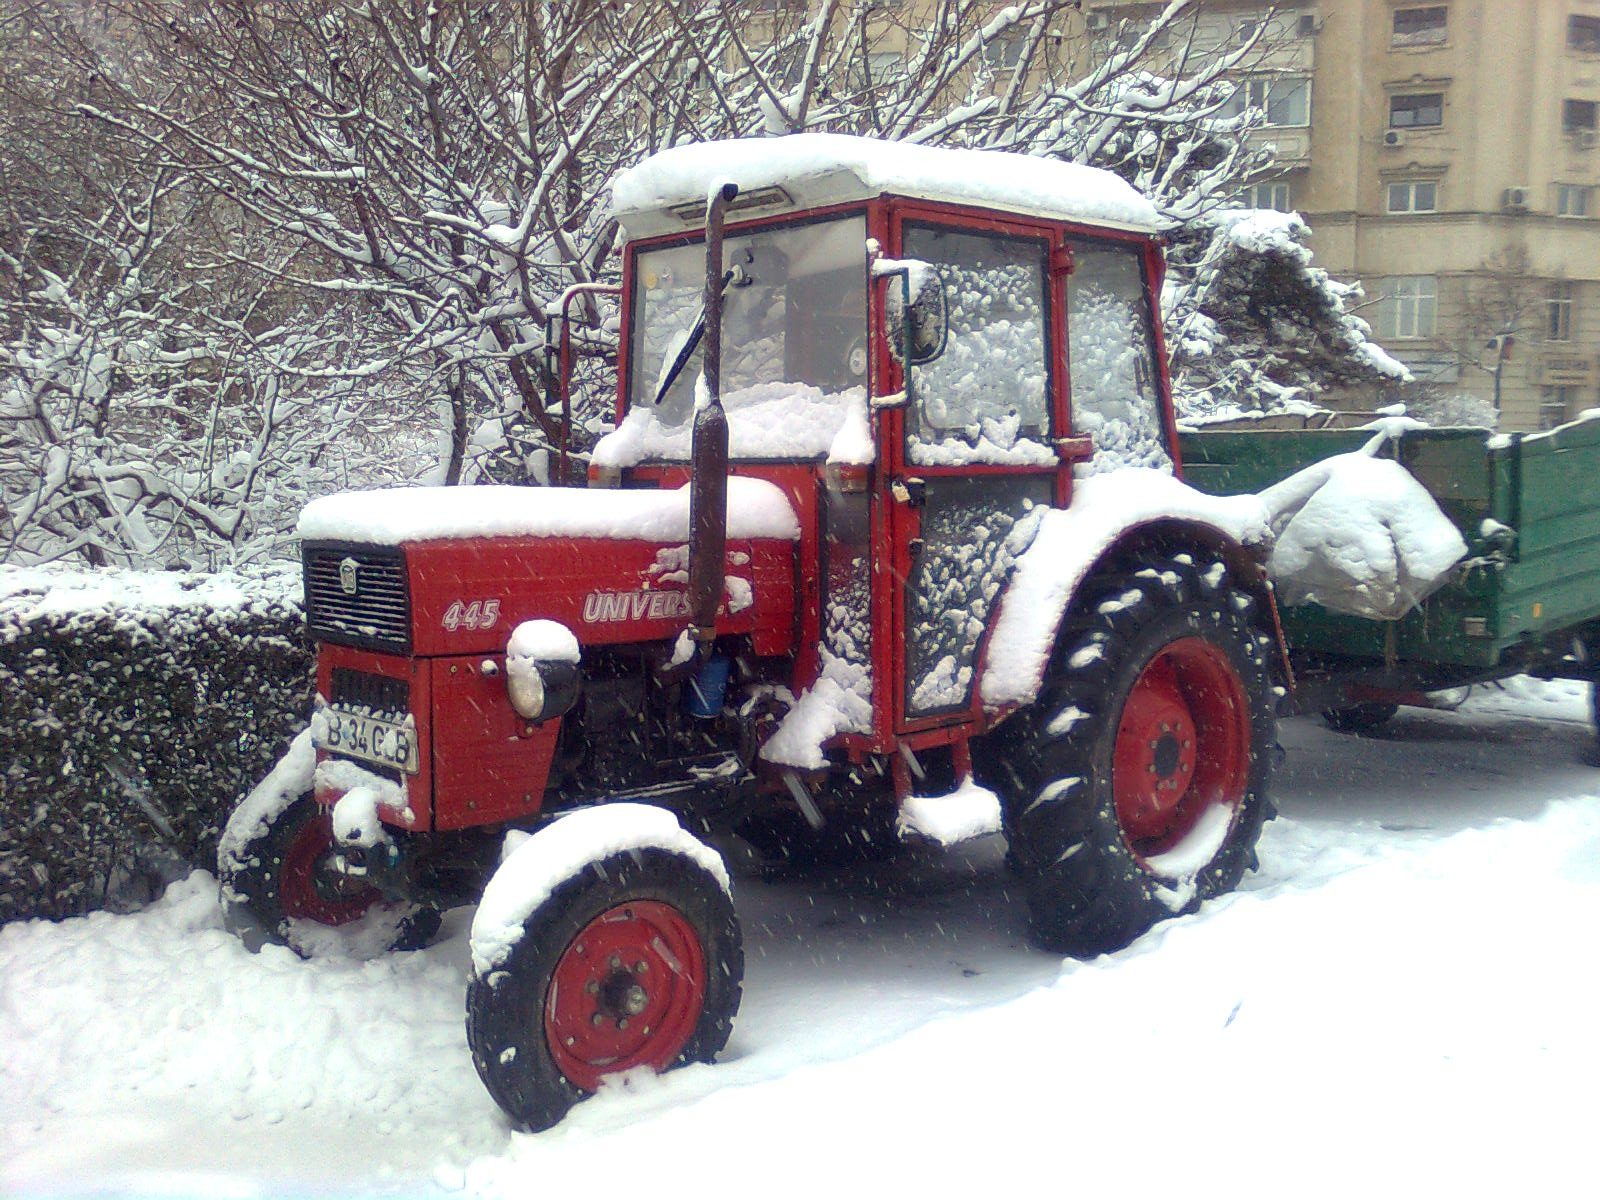 File:UTB - Tractor Universal 445 in winter 2011.jpg